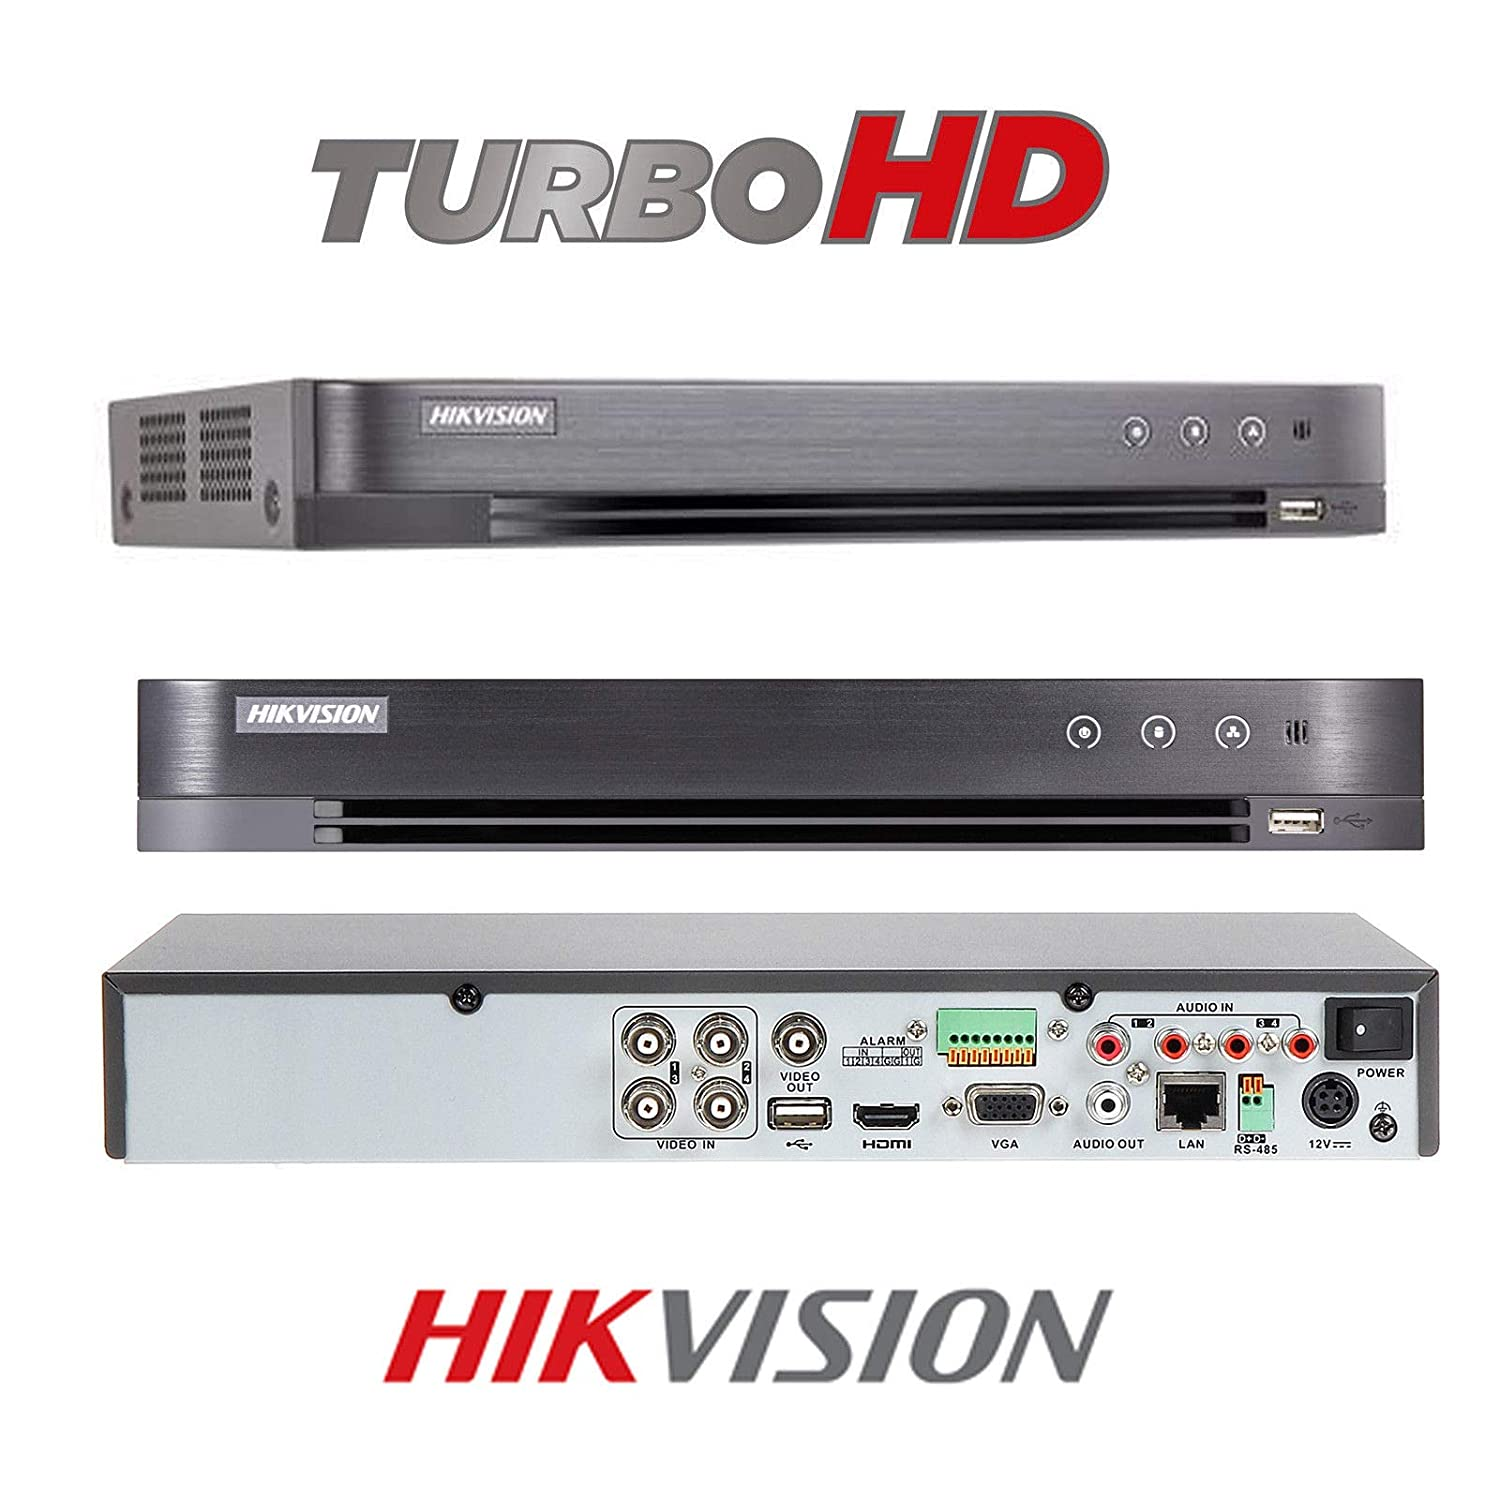 HIKVISION CCTV SYSTEM 1080P FULL HD KIT PACKAGE INC 1TB HDD 4X SECURITY  CAMERA OUTDOOR 2 4 MEGA PIXEL DOME 4CH DVR HDMI P2P